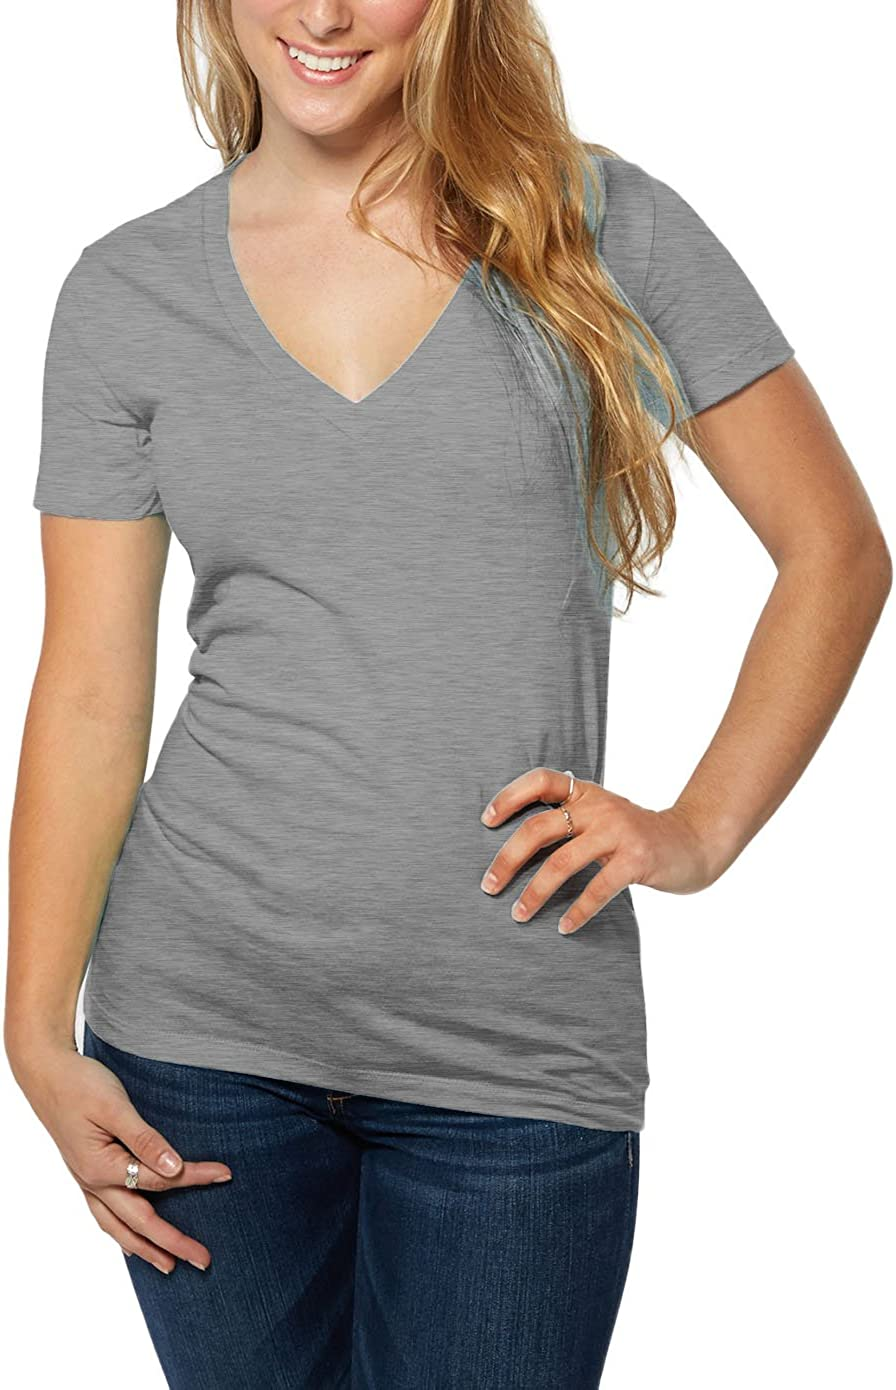 thegymyarraville.com.au Nayked Apparel Womens Ridiculously Soft ...